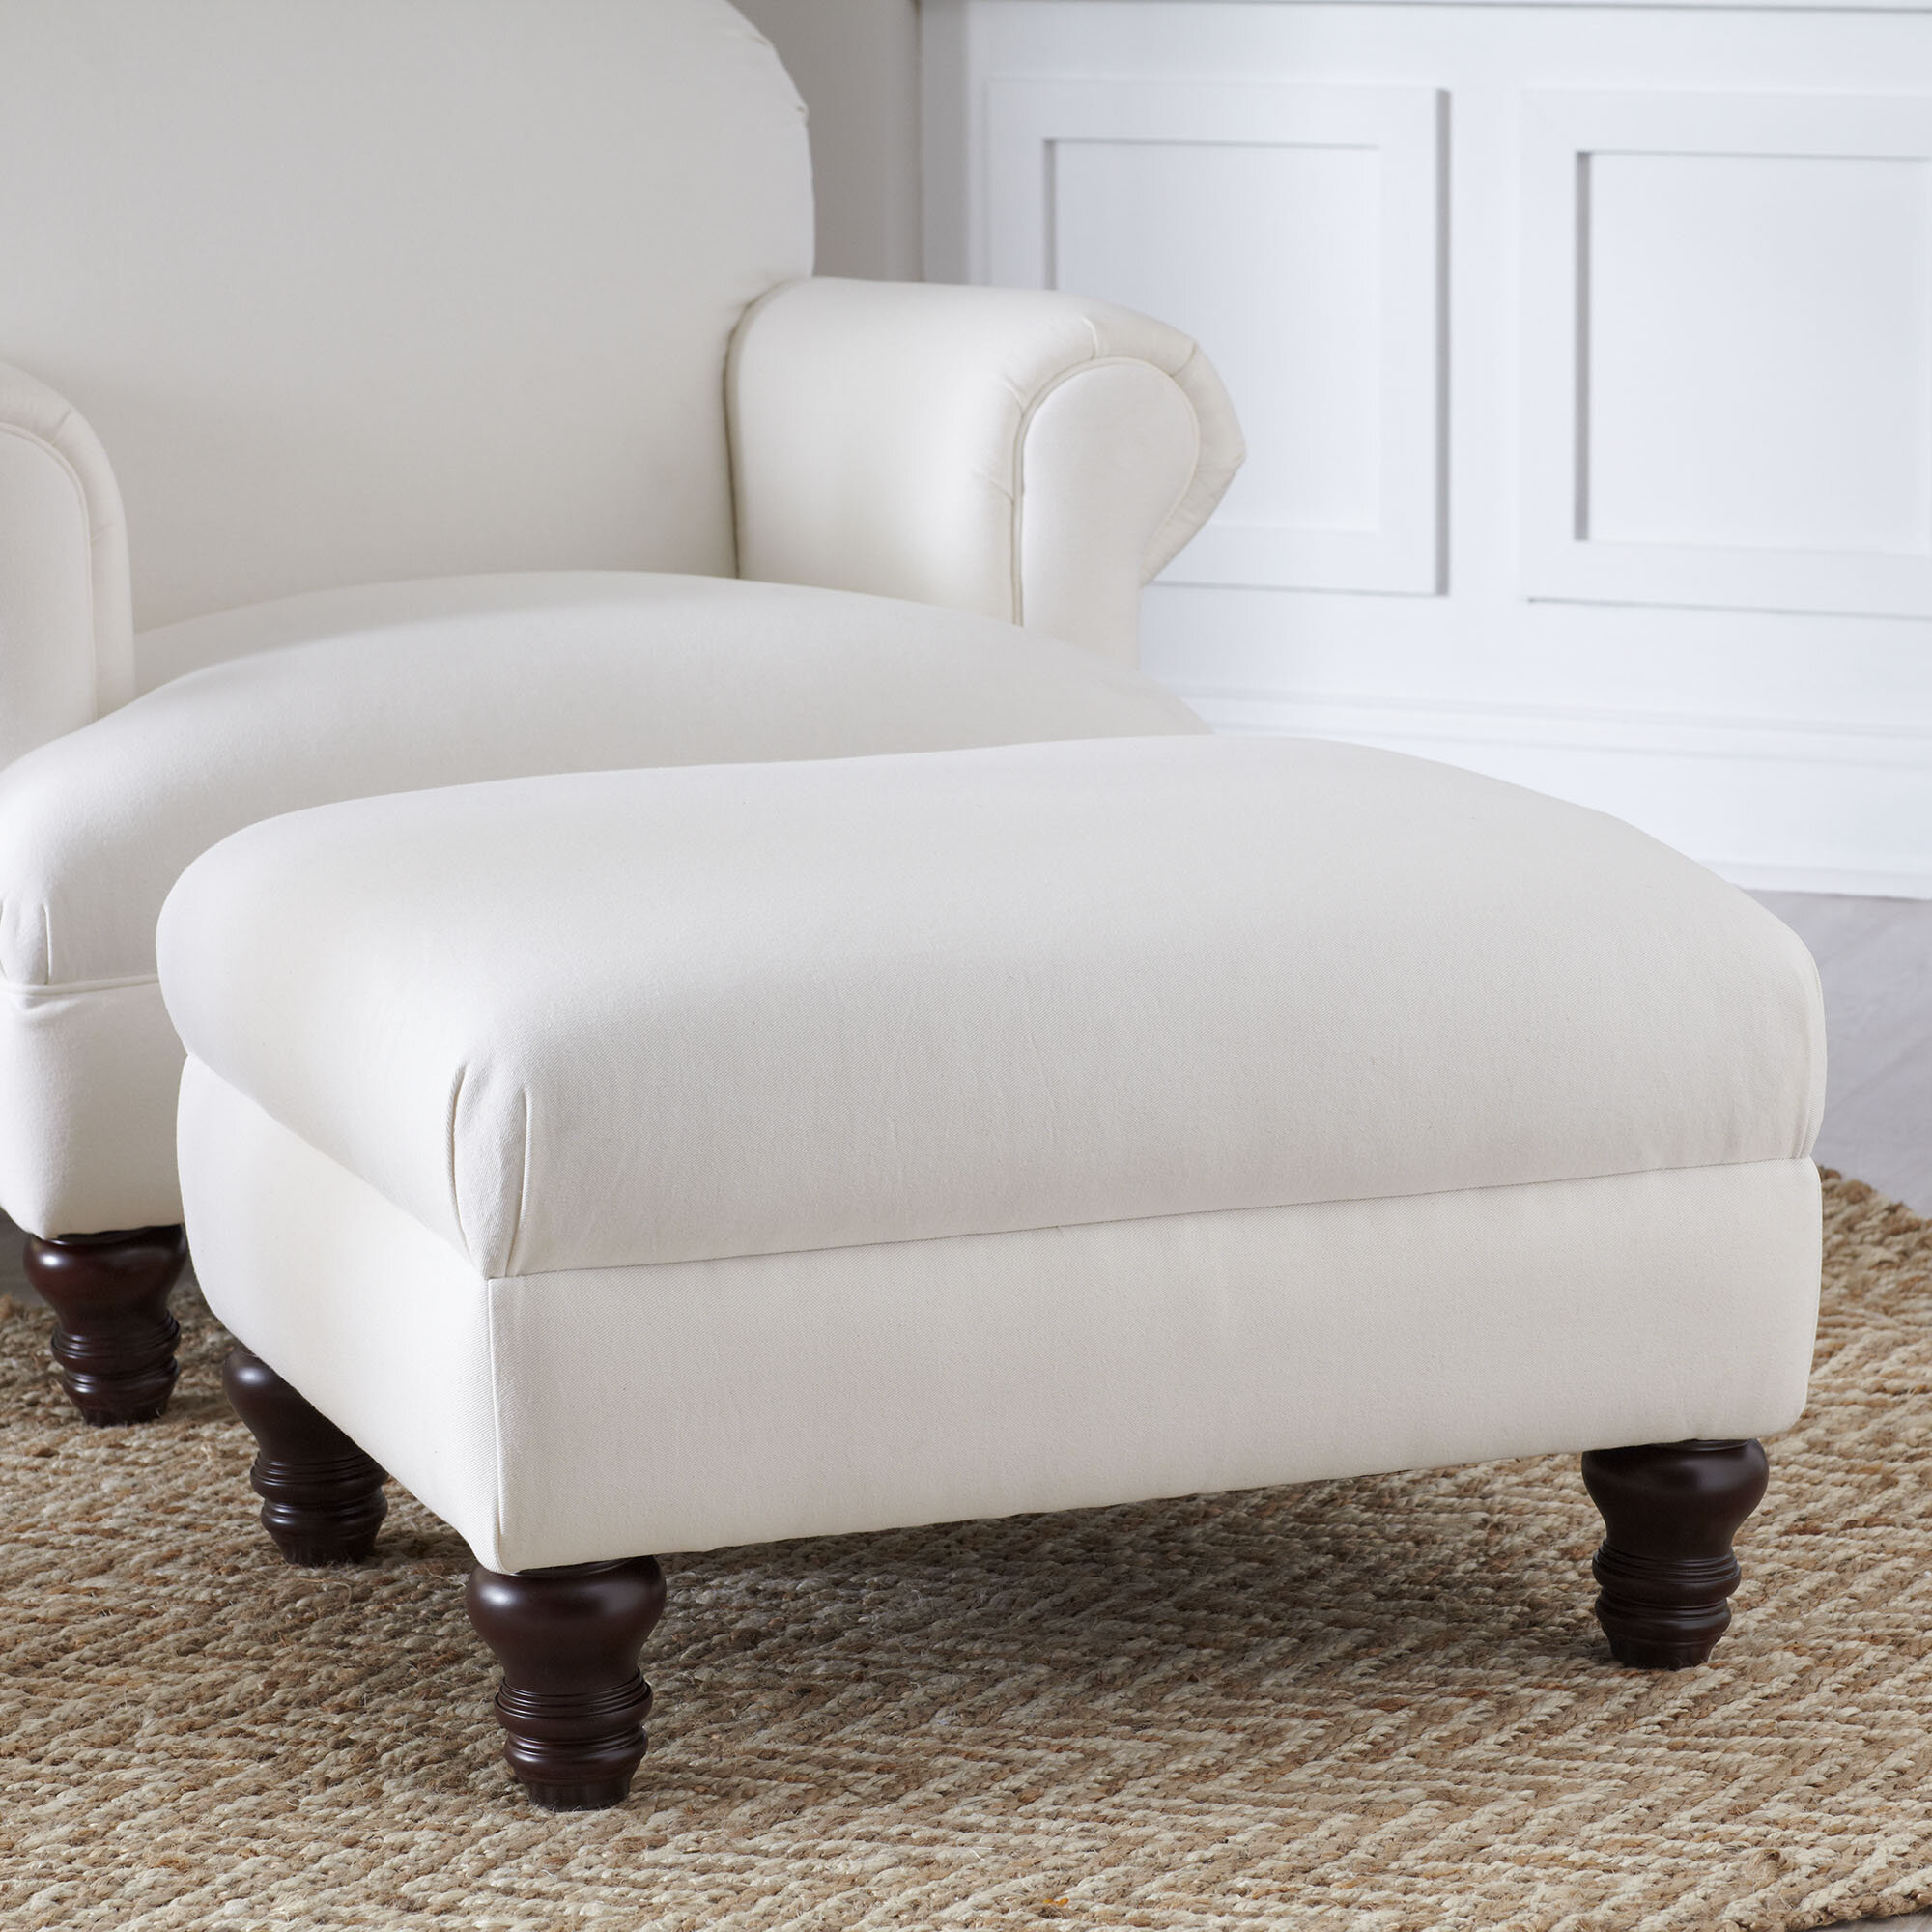 modern home mid armchair ottoman design floral rooms chairs living century for most reading set best comfortable cozy